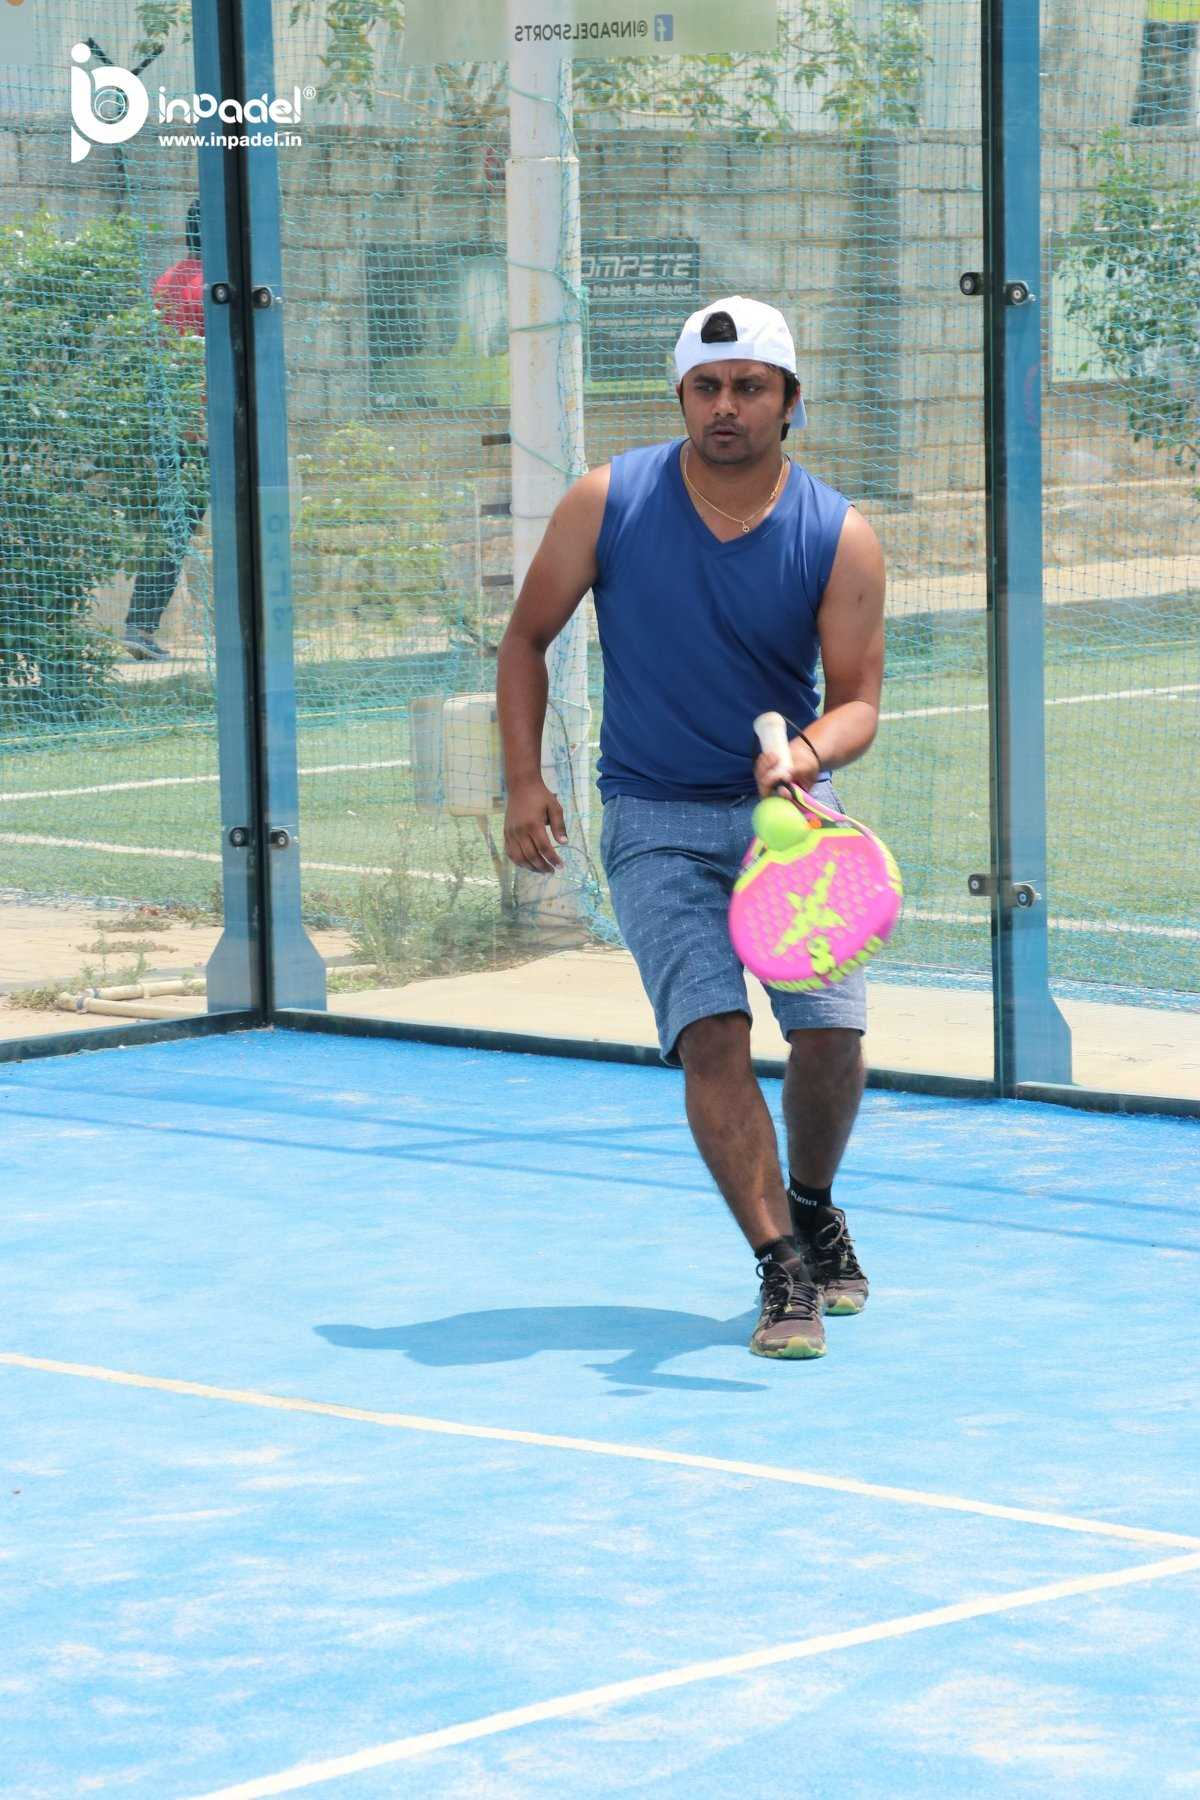 InPadel 1Yr Celebration of Padel in INDIA - Padel - Padel India (43)